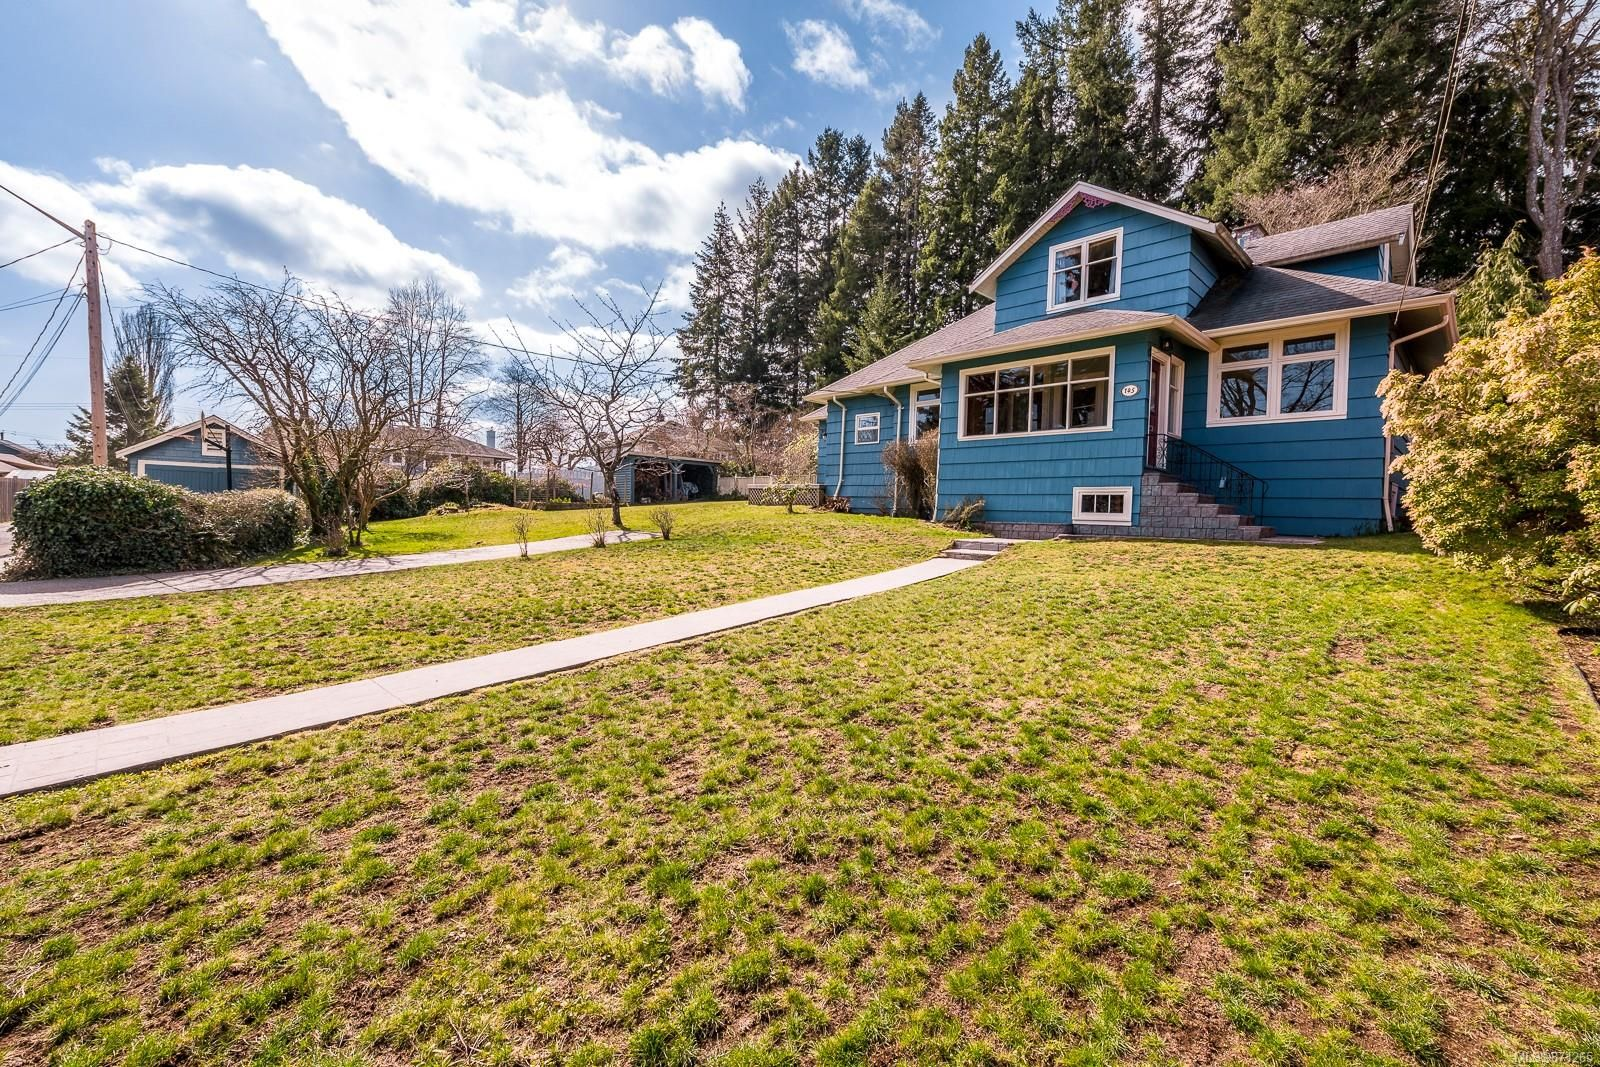 Main Photo: 145 Douglas Pl in : CV Courtenay City House for sale (Comox Valley)  : MLS®# 871265